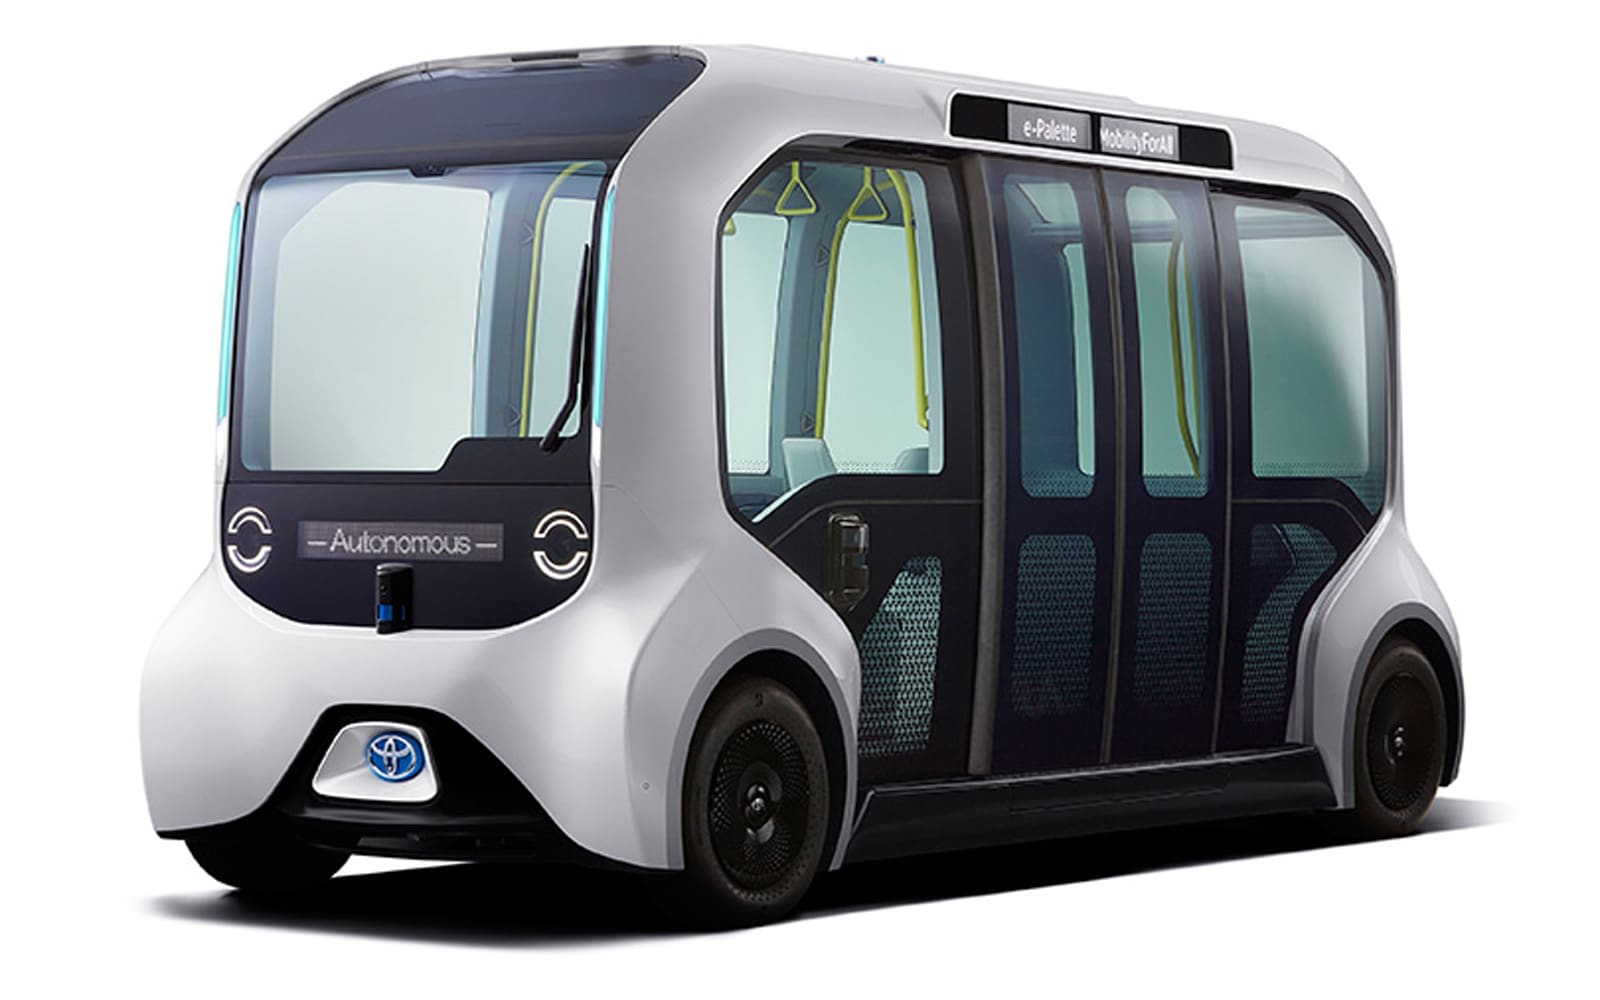 Toyota's e-Palette will transport athletes during the 2020 Olympics